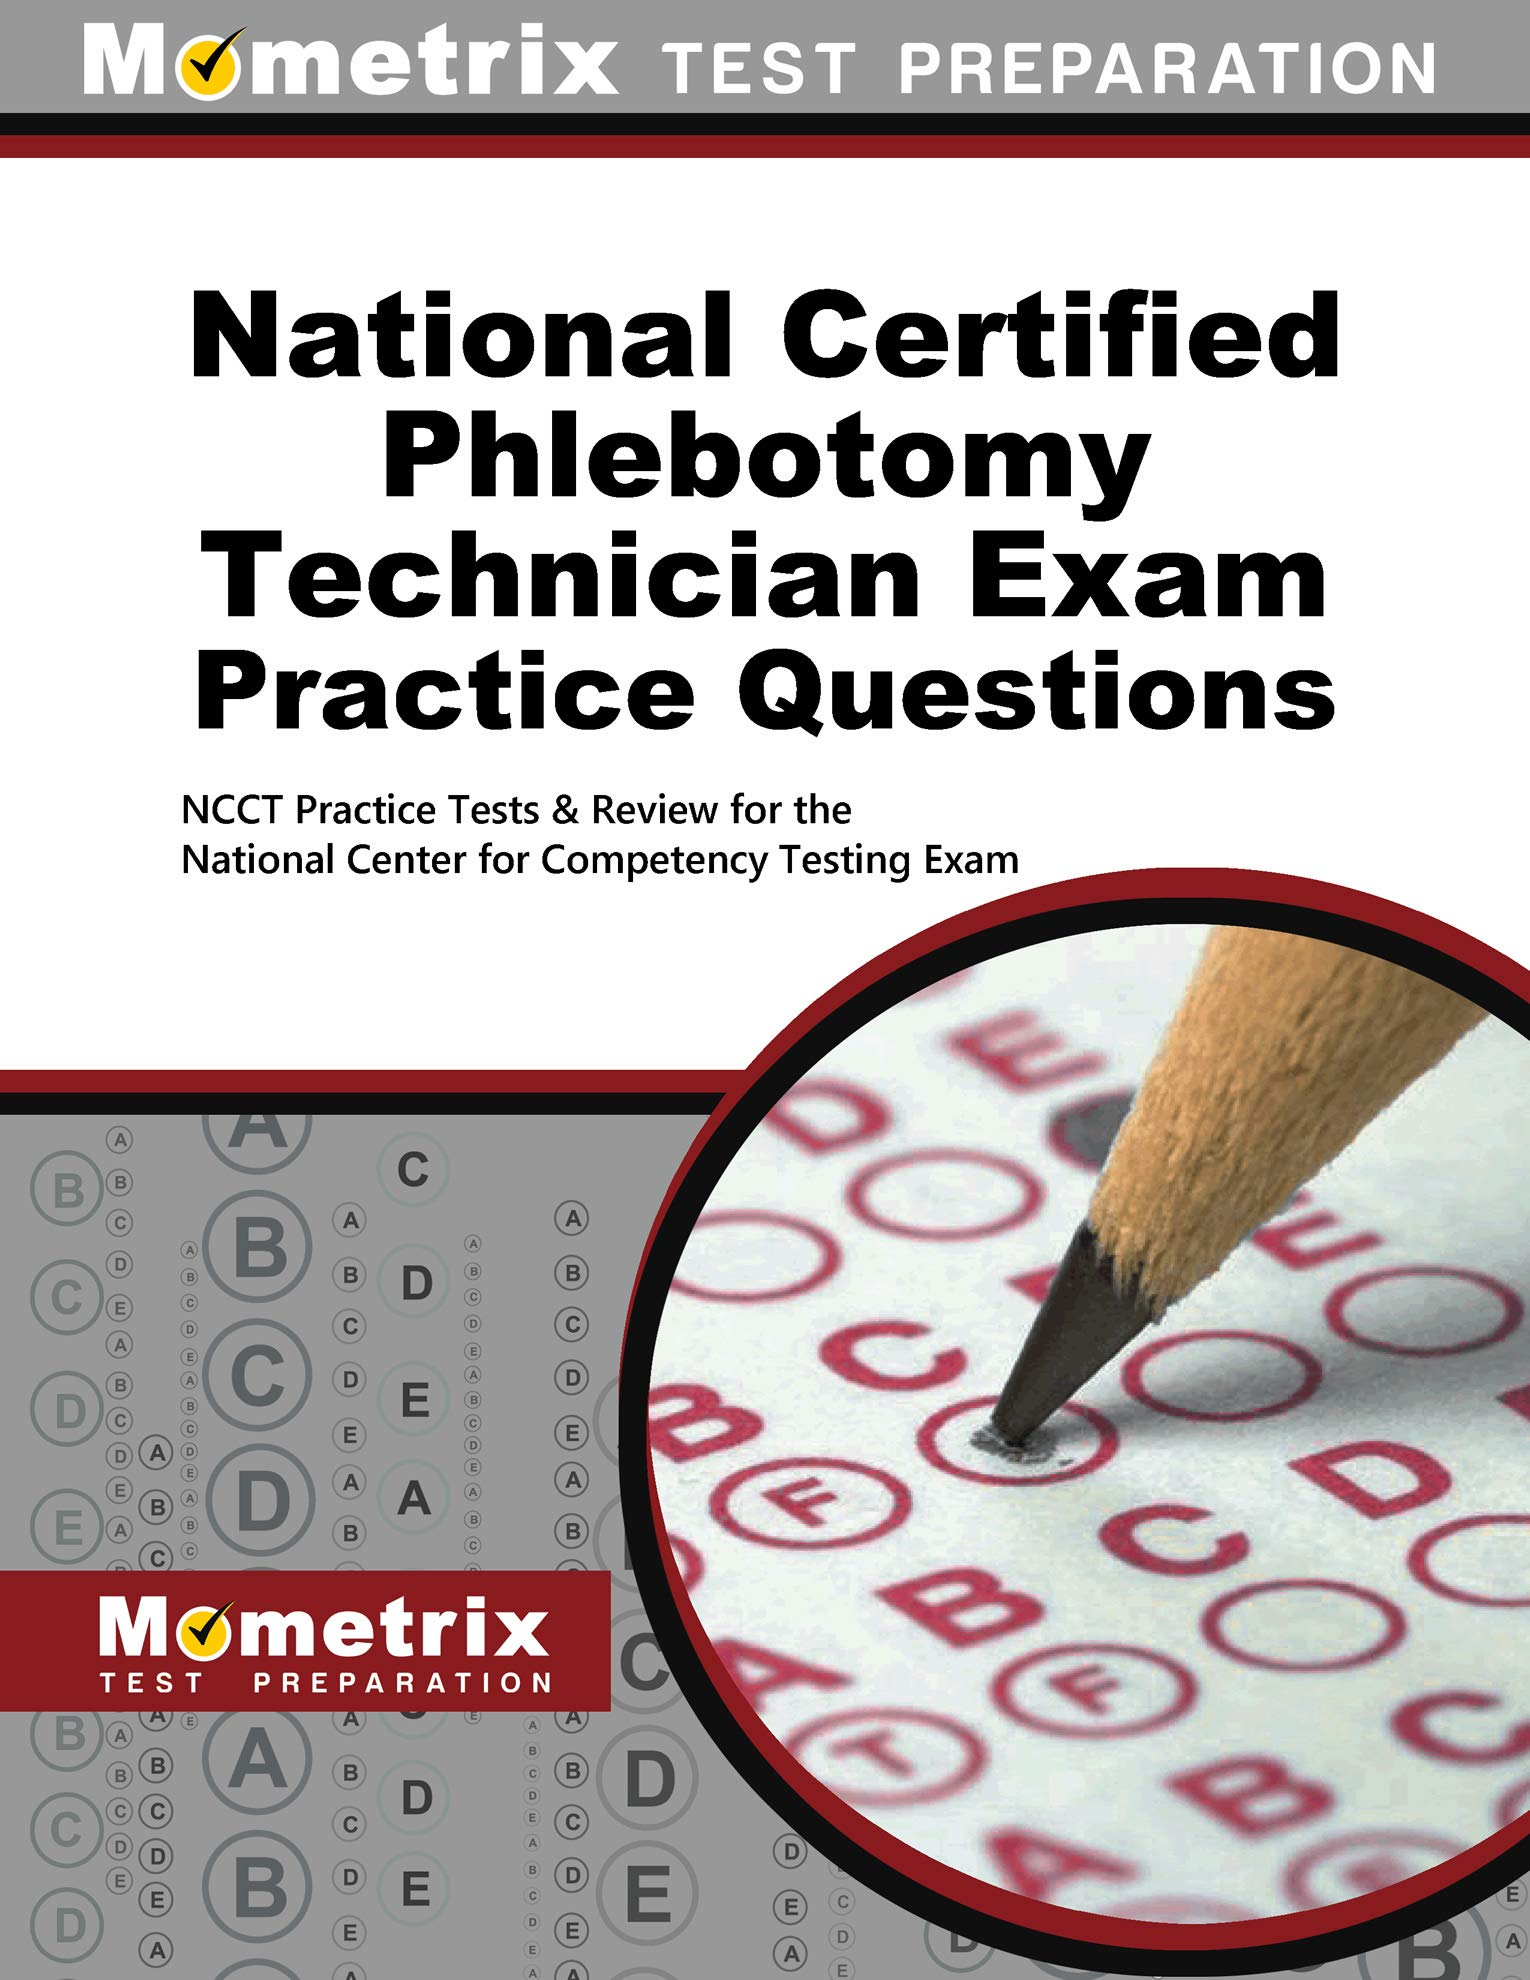 National Certified Phlebotomy Technician Exam Practice Questions: NCCT Practice Tests and Review for the National Center for Competency Testing Exam